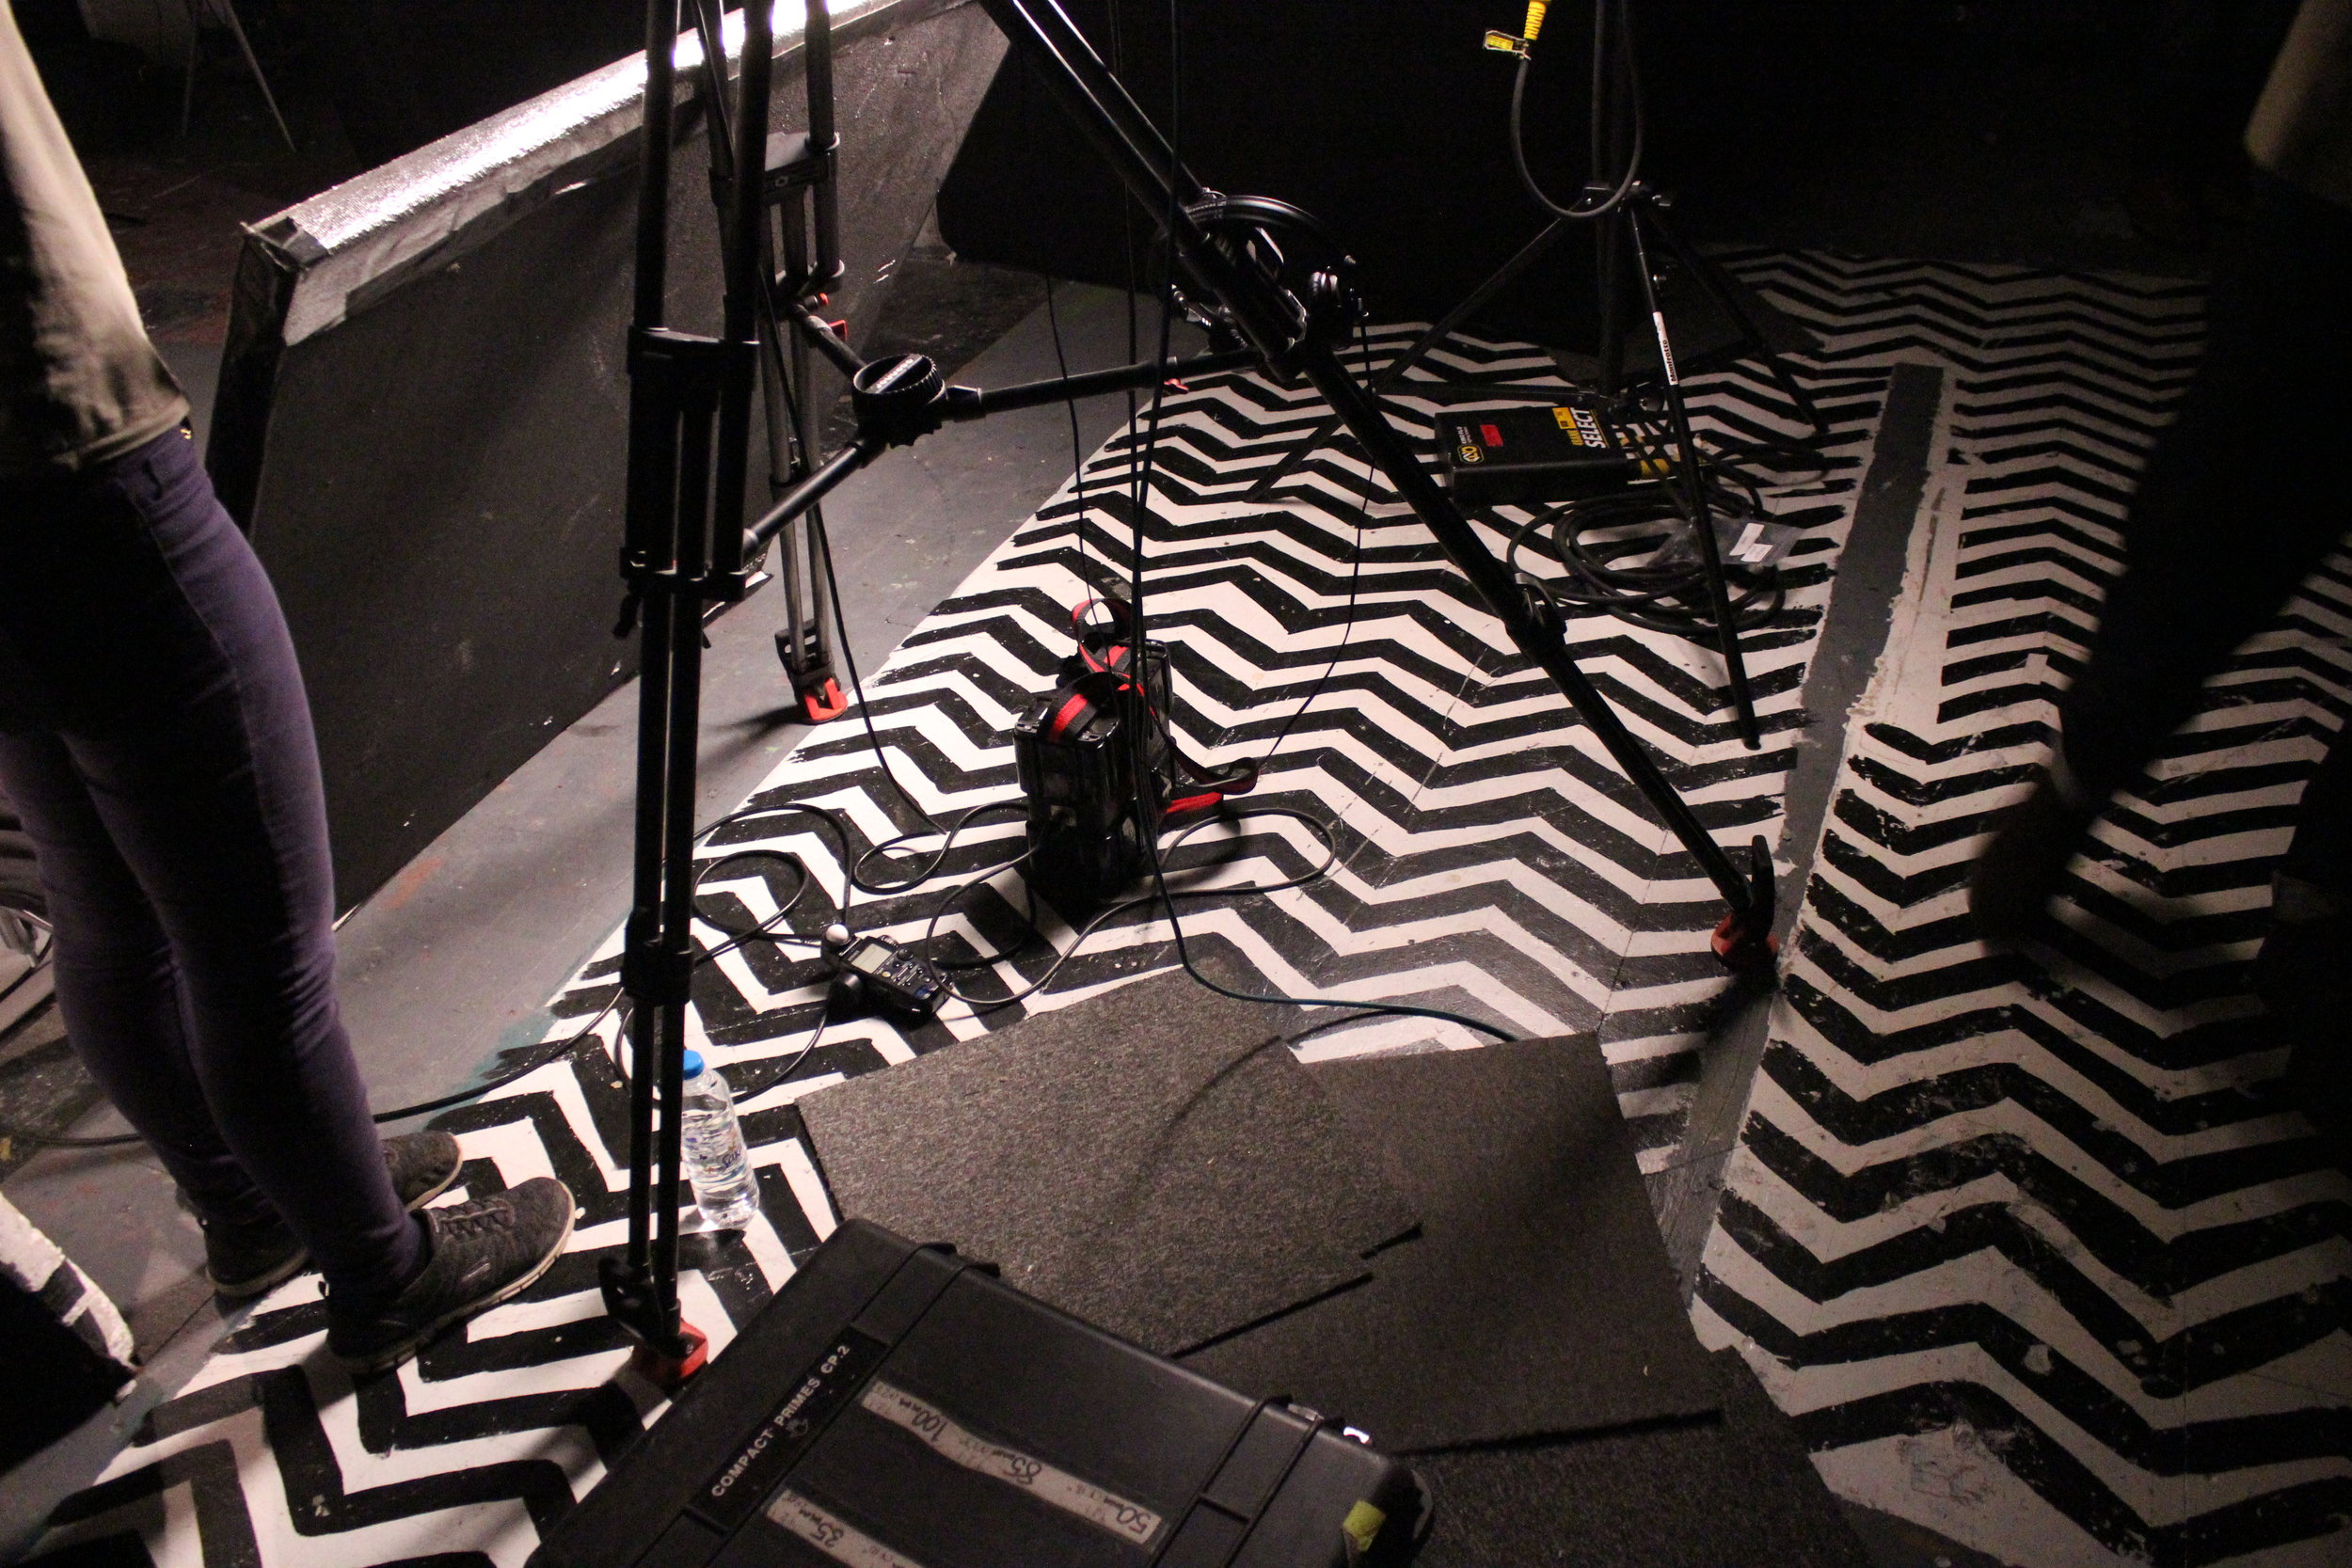 The CFS studio floor